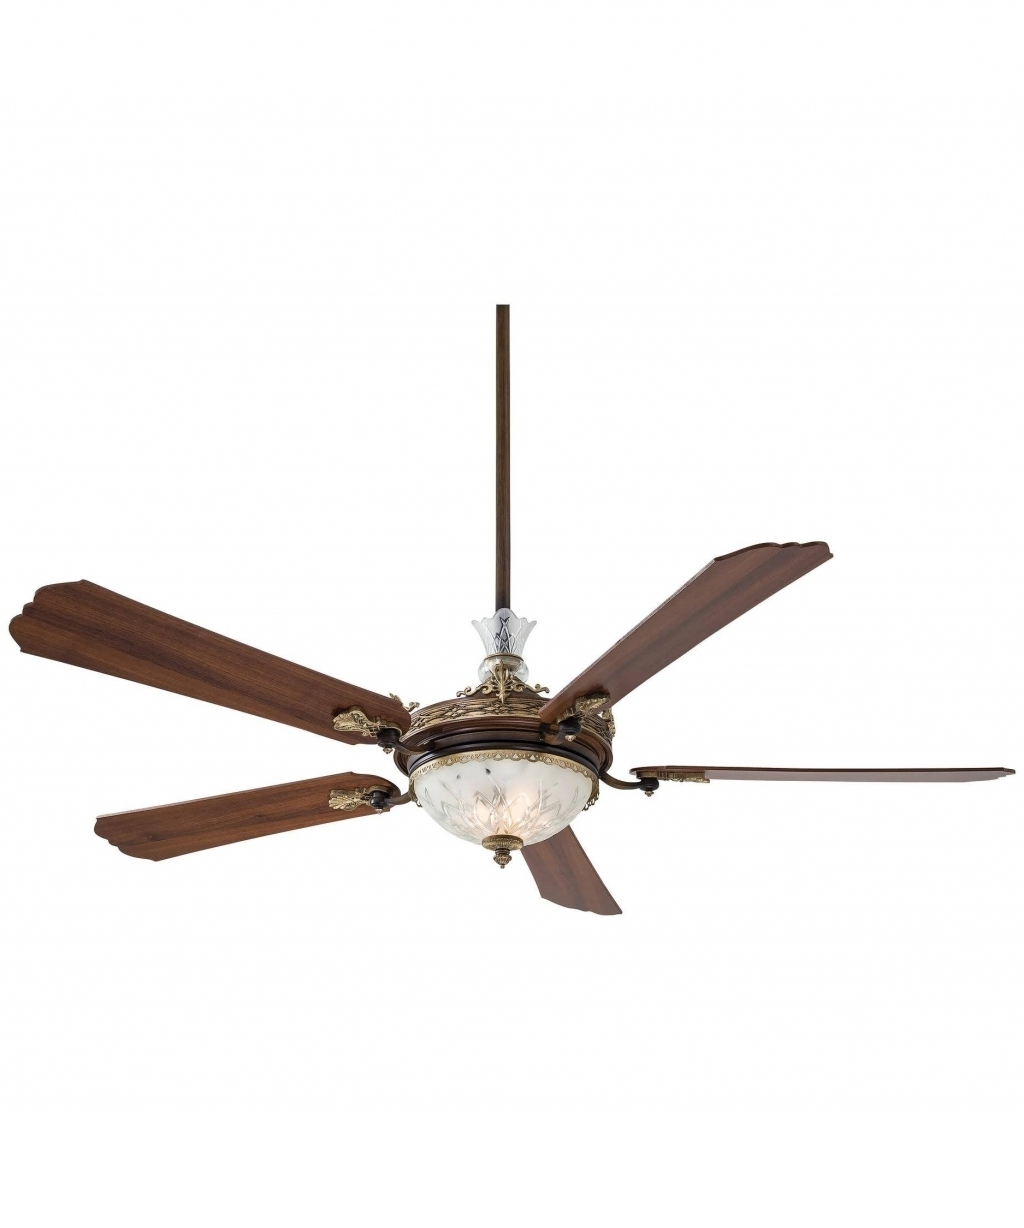 Most Current Amazon Outdoor Ceiling Fans With Lights Intended For Interior Design: Outdoor Ceiling Fans With Lights Glamorous (View 15 of 20)